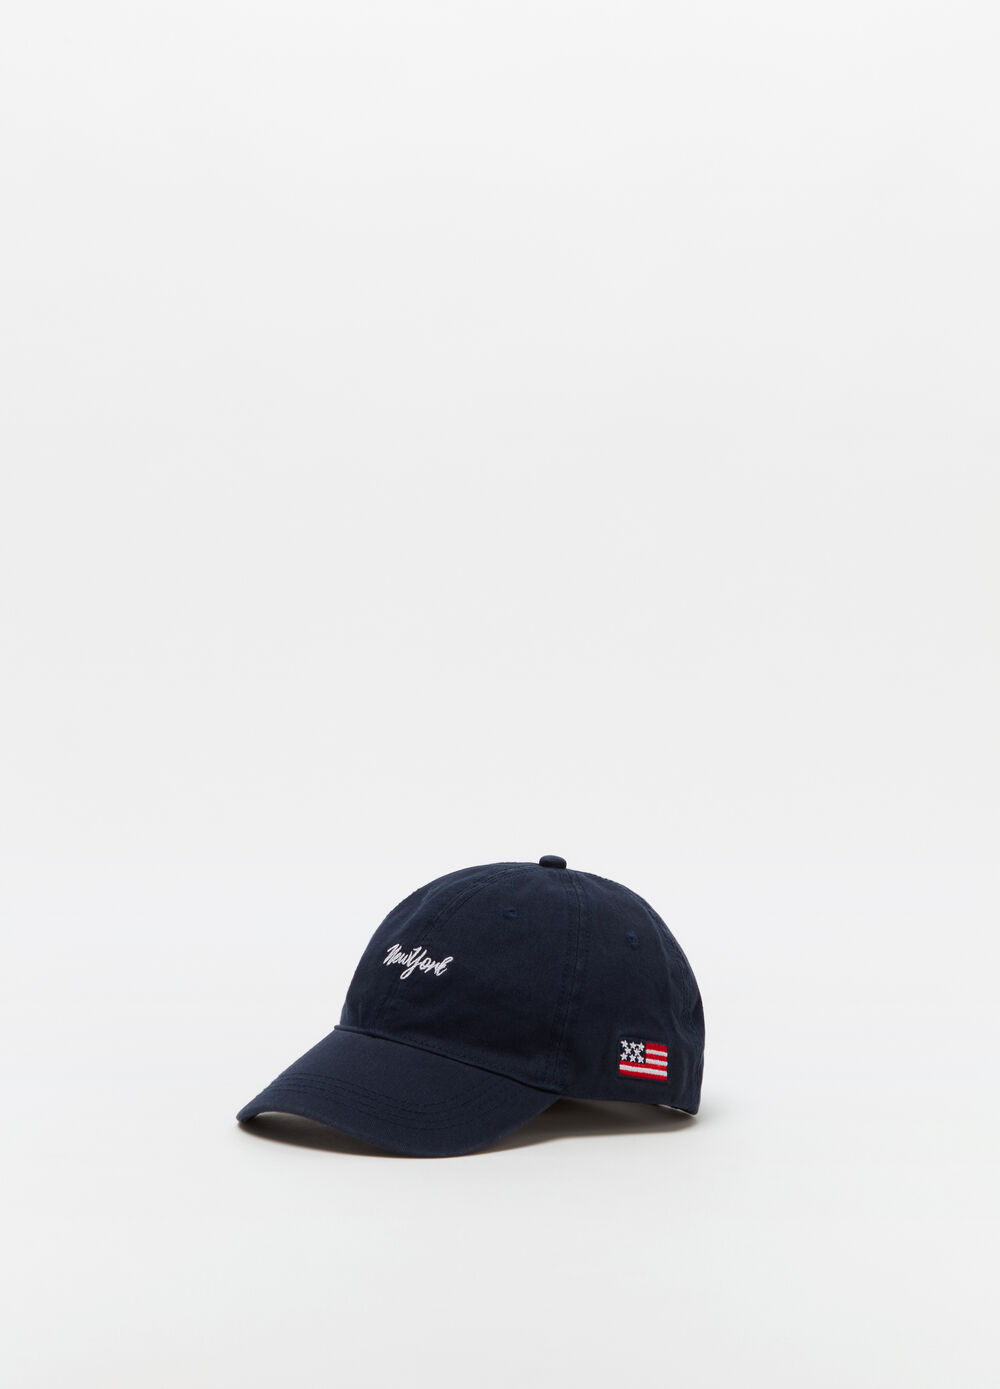 Vintage-effect baseball cap with embroidery